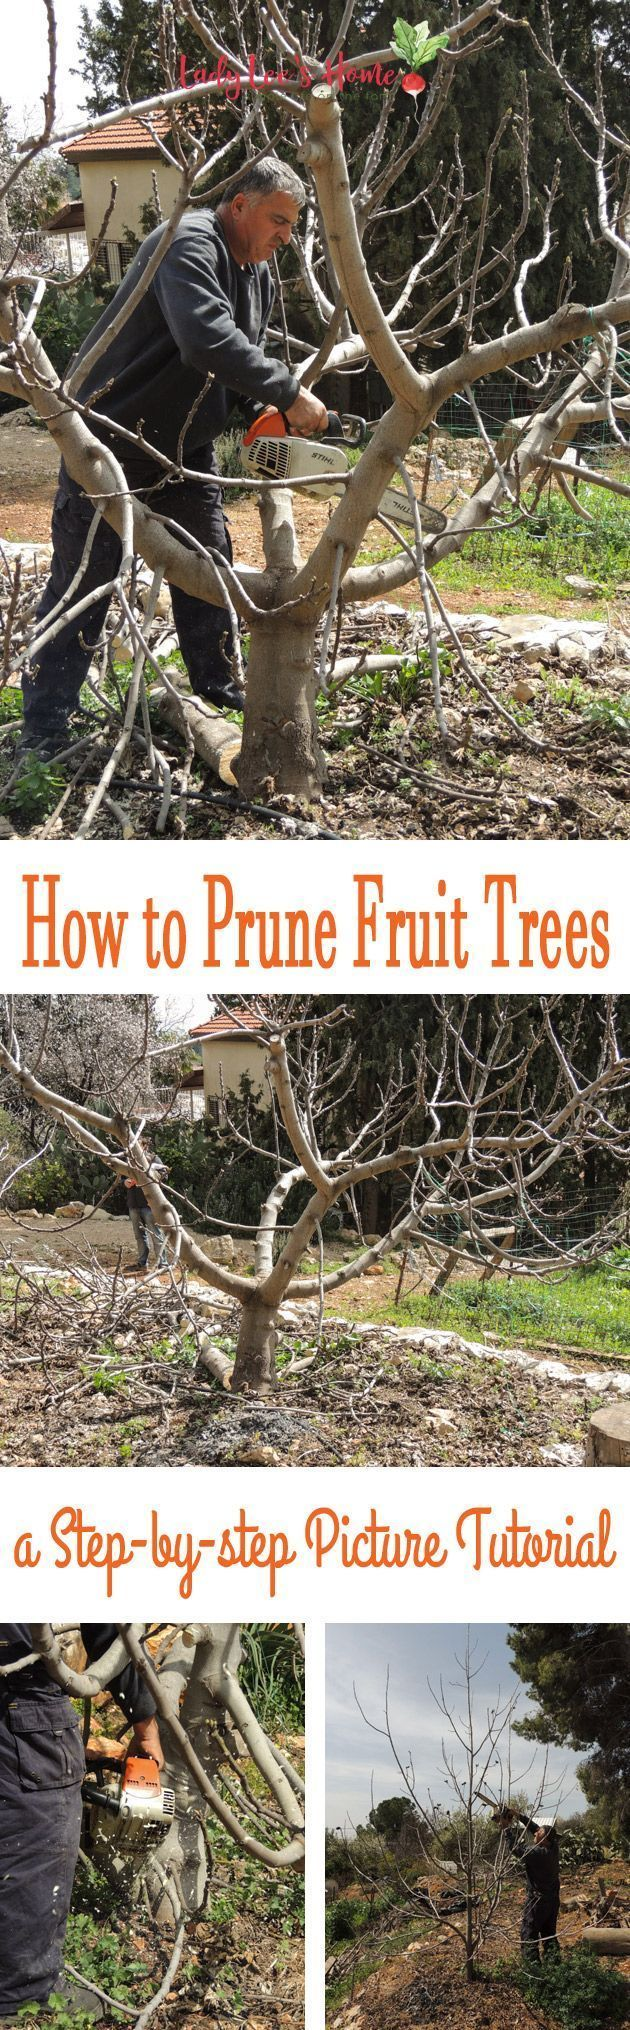 How To Prune Fruit Trees To Keep Them Small Fruit Tree Garden Fruit Trees Garden Design Prune Fruit